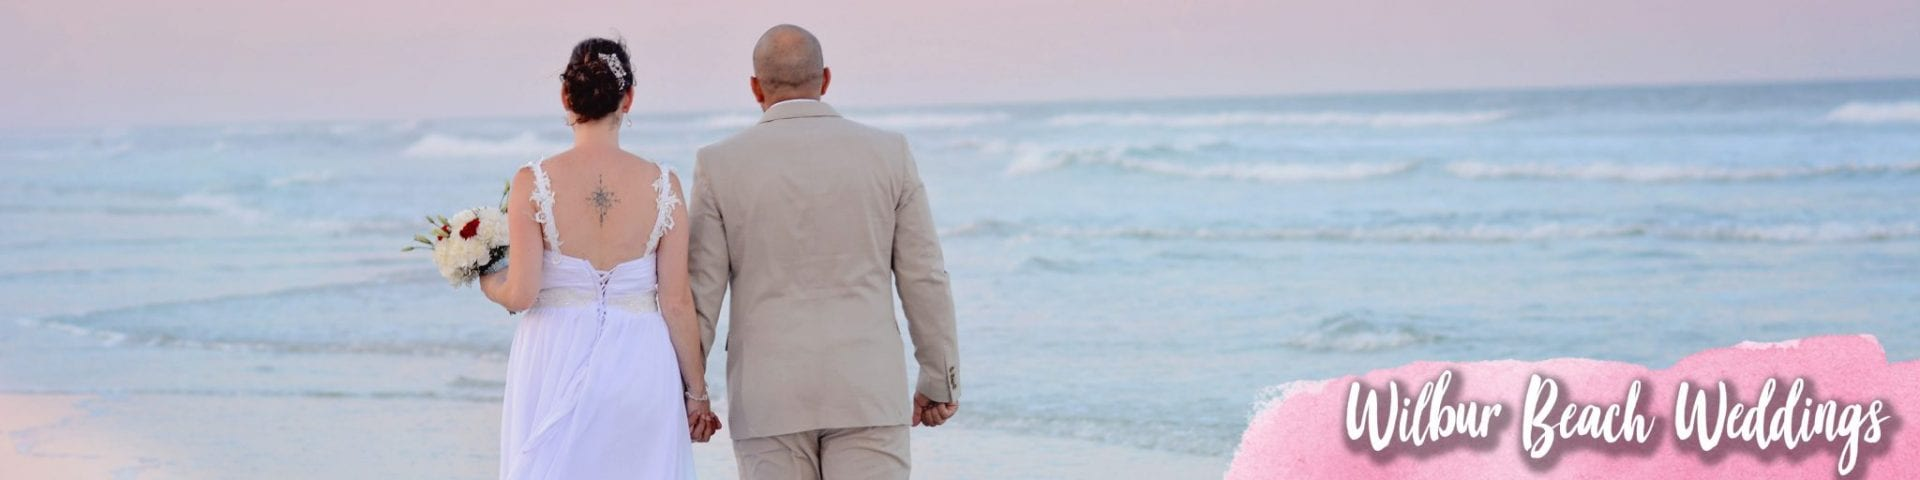 Couple walking along the shore at Wilbur beach wedding ceremony